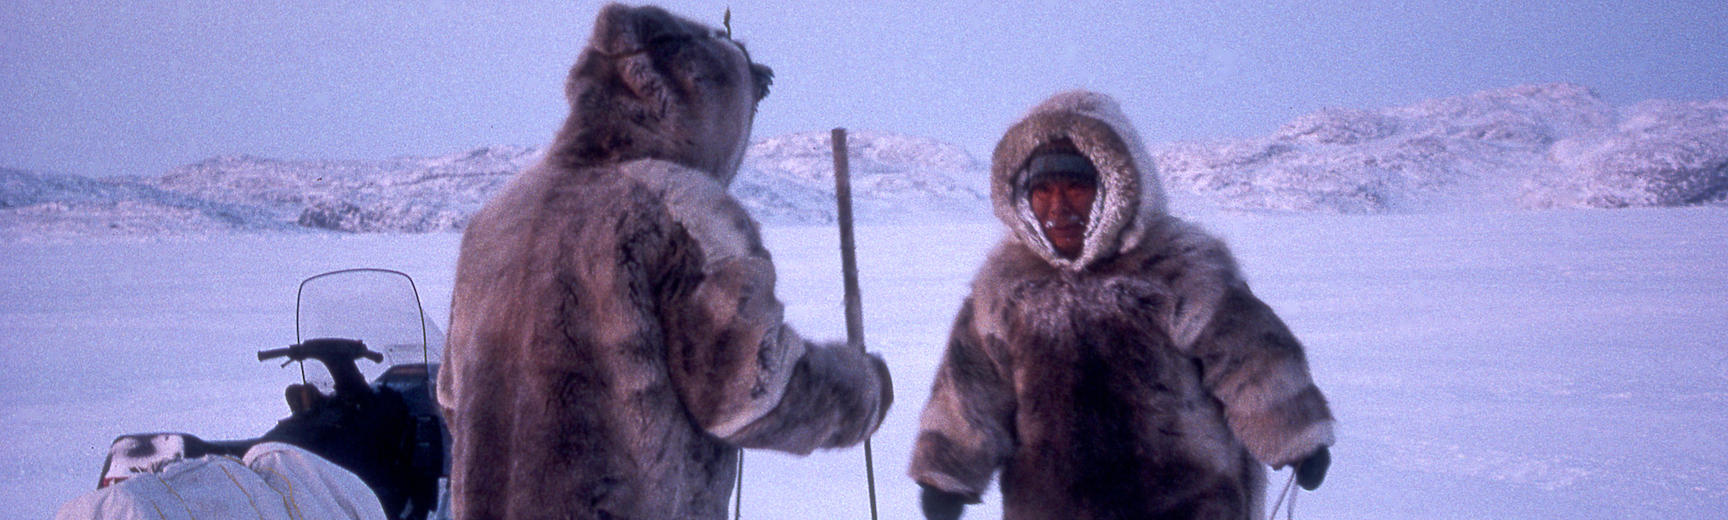 Two Inuit men wearing thick fur coats with hoods up look down into a hole in the ice.